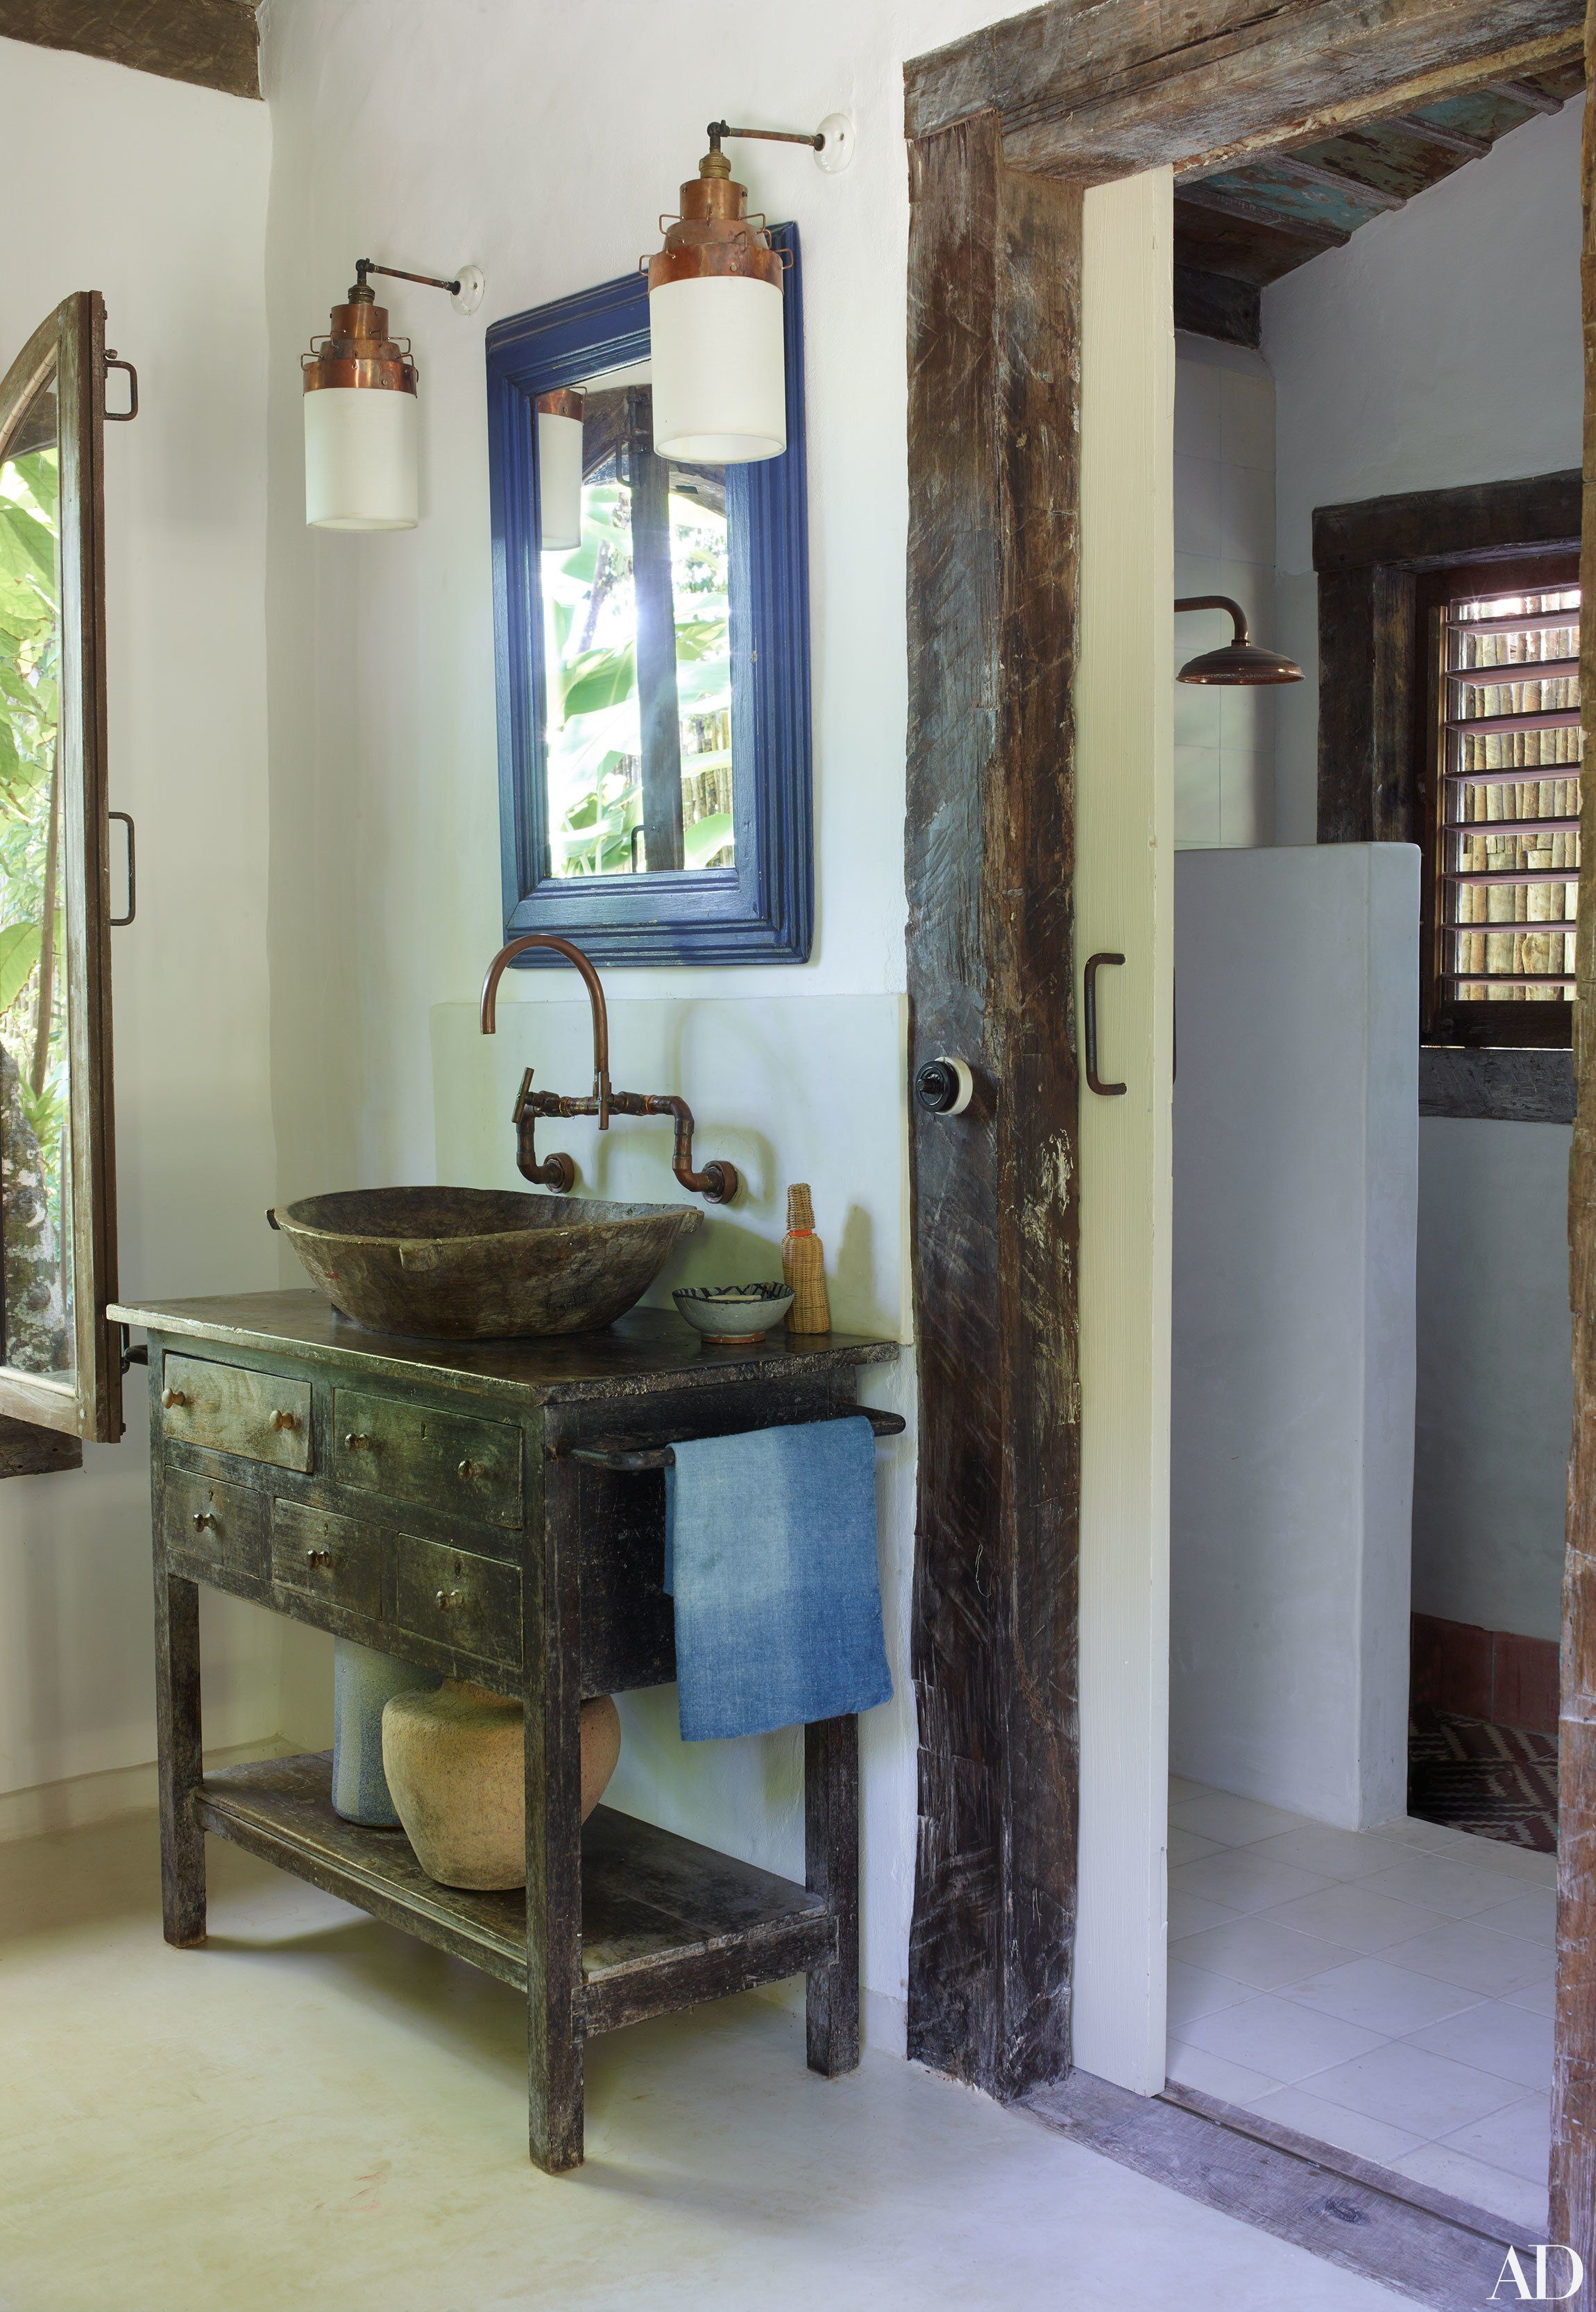 Anderson cooper s brazilian rest house is a vintage and rustic dream - Go Inside Anderson Cooper S Trancoso Brazil Vacation Home A Vintage Console